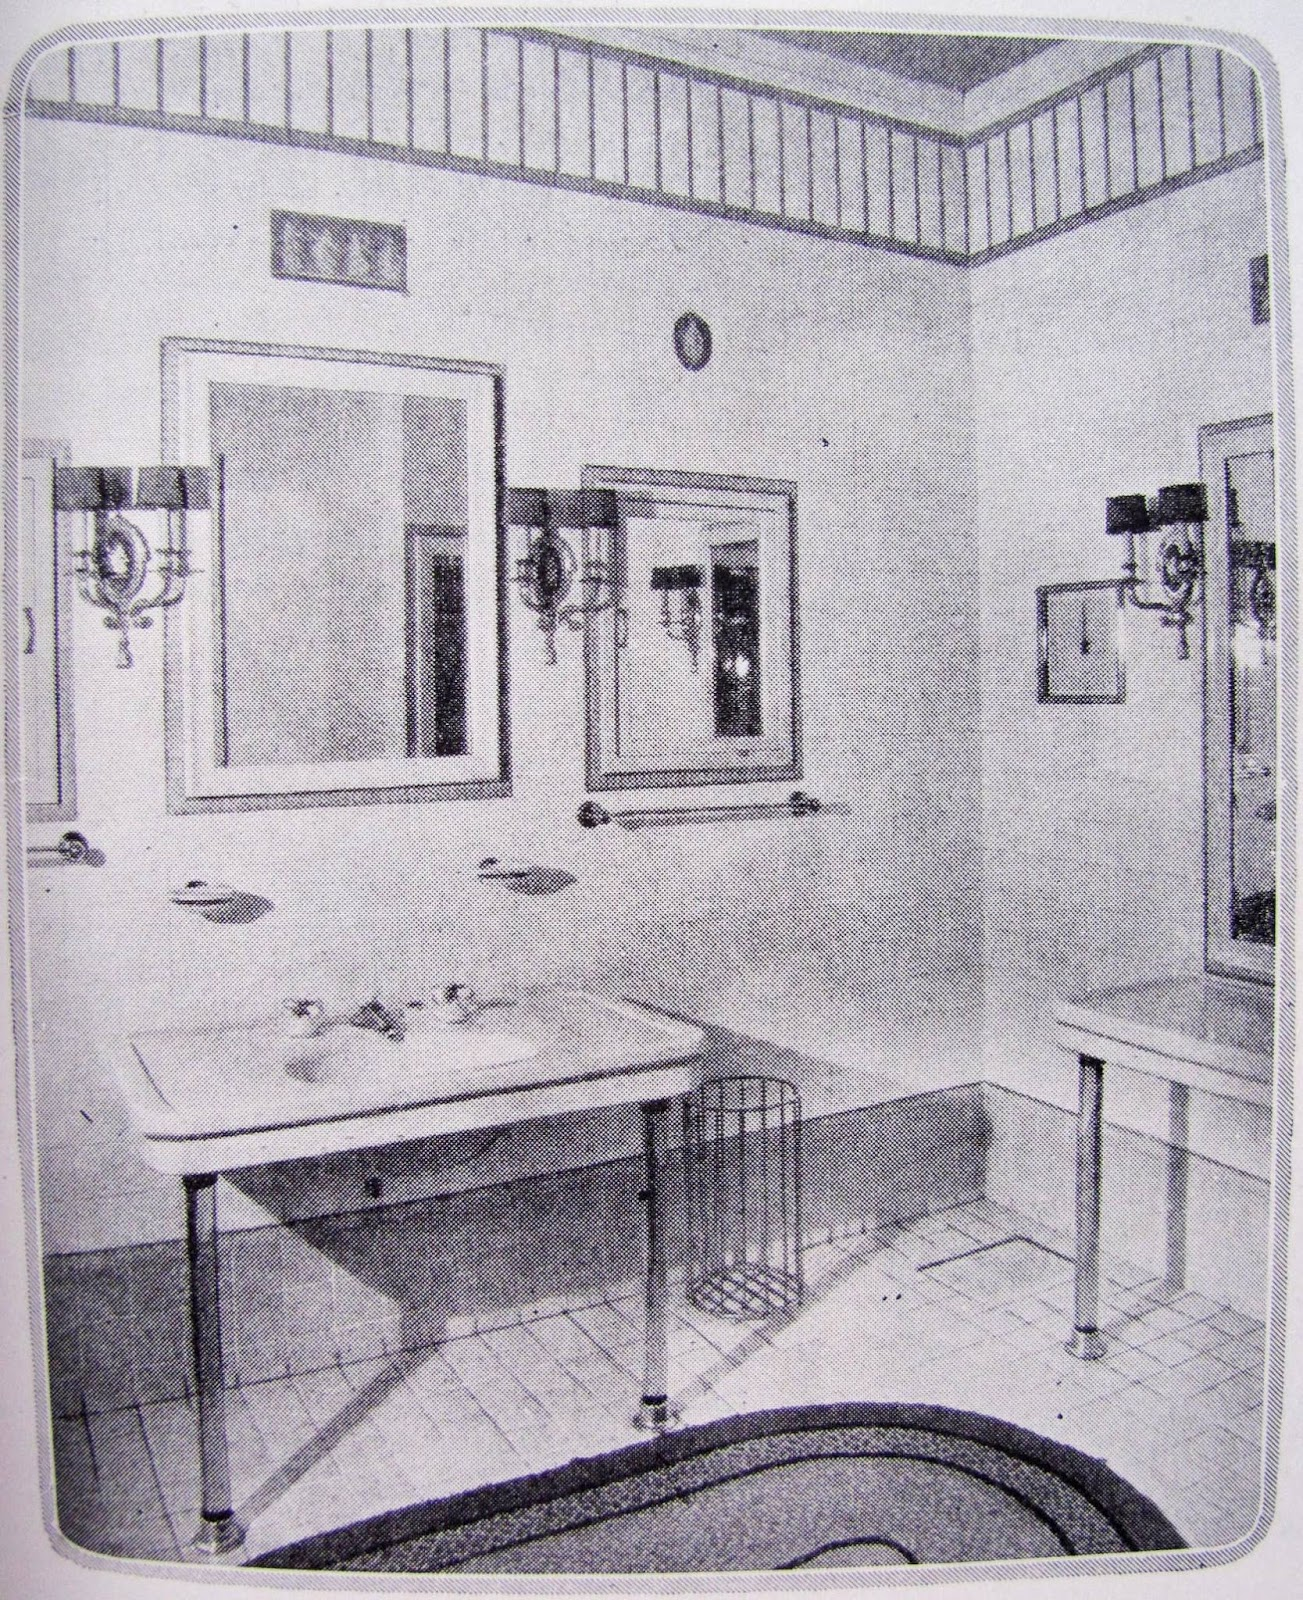 Studio garden bungalow 1920s vintage bathroom styles for Bathroom ideas 1920s home